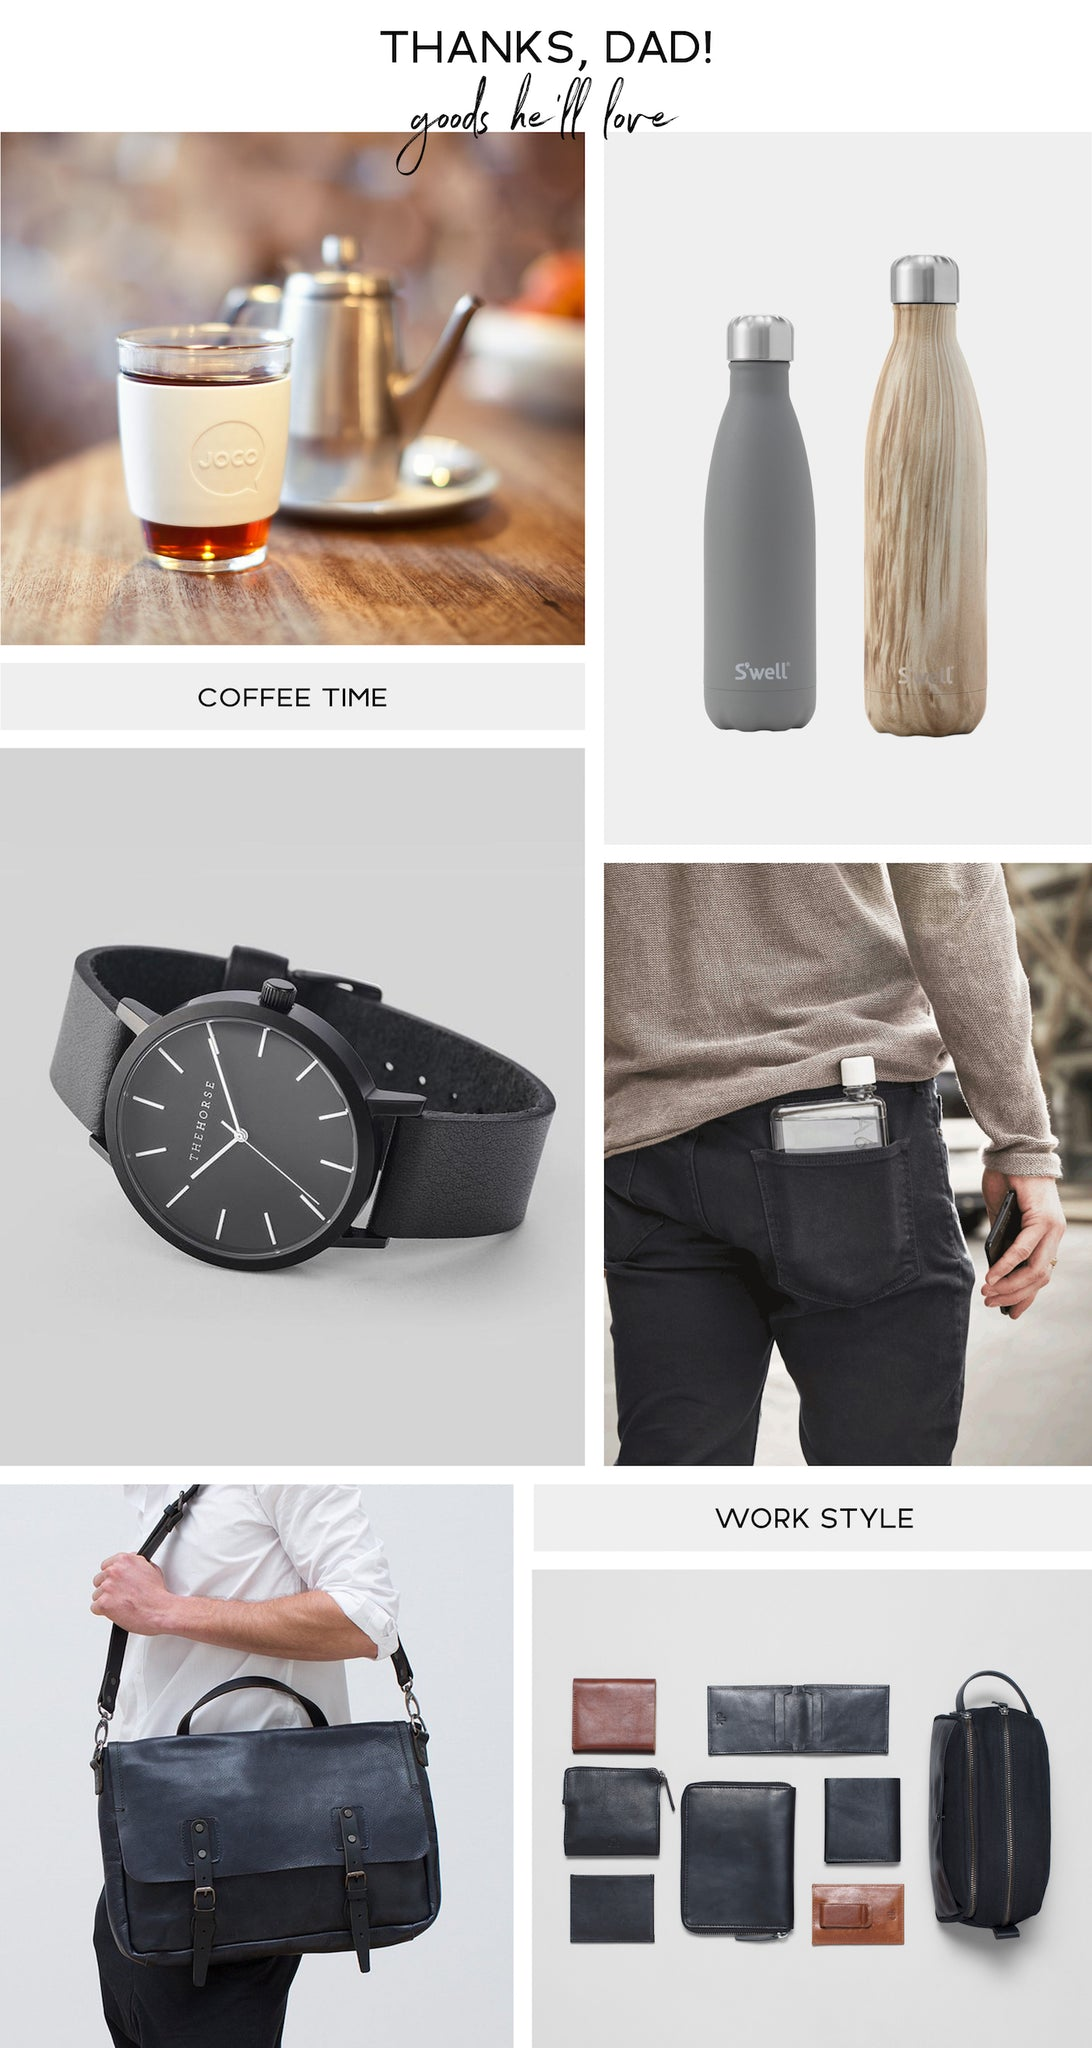 Paper Plane Store - Father's Day